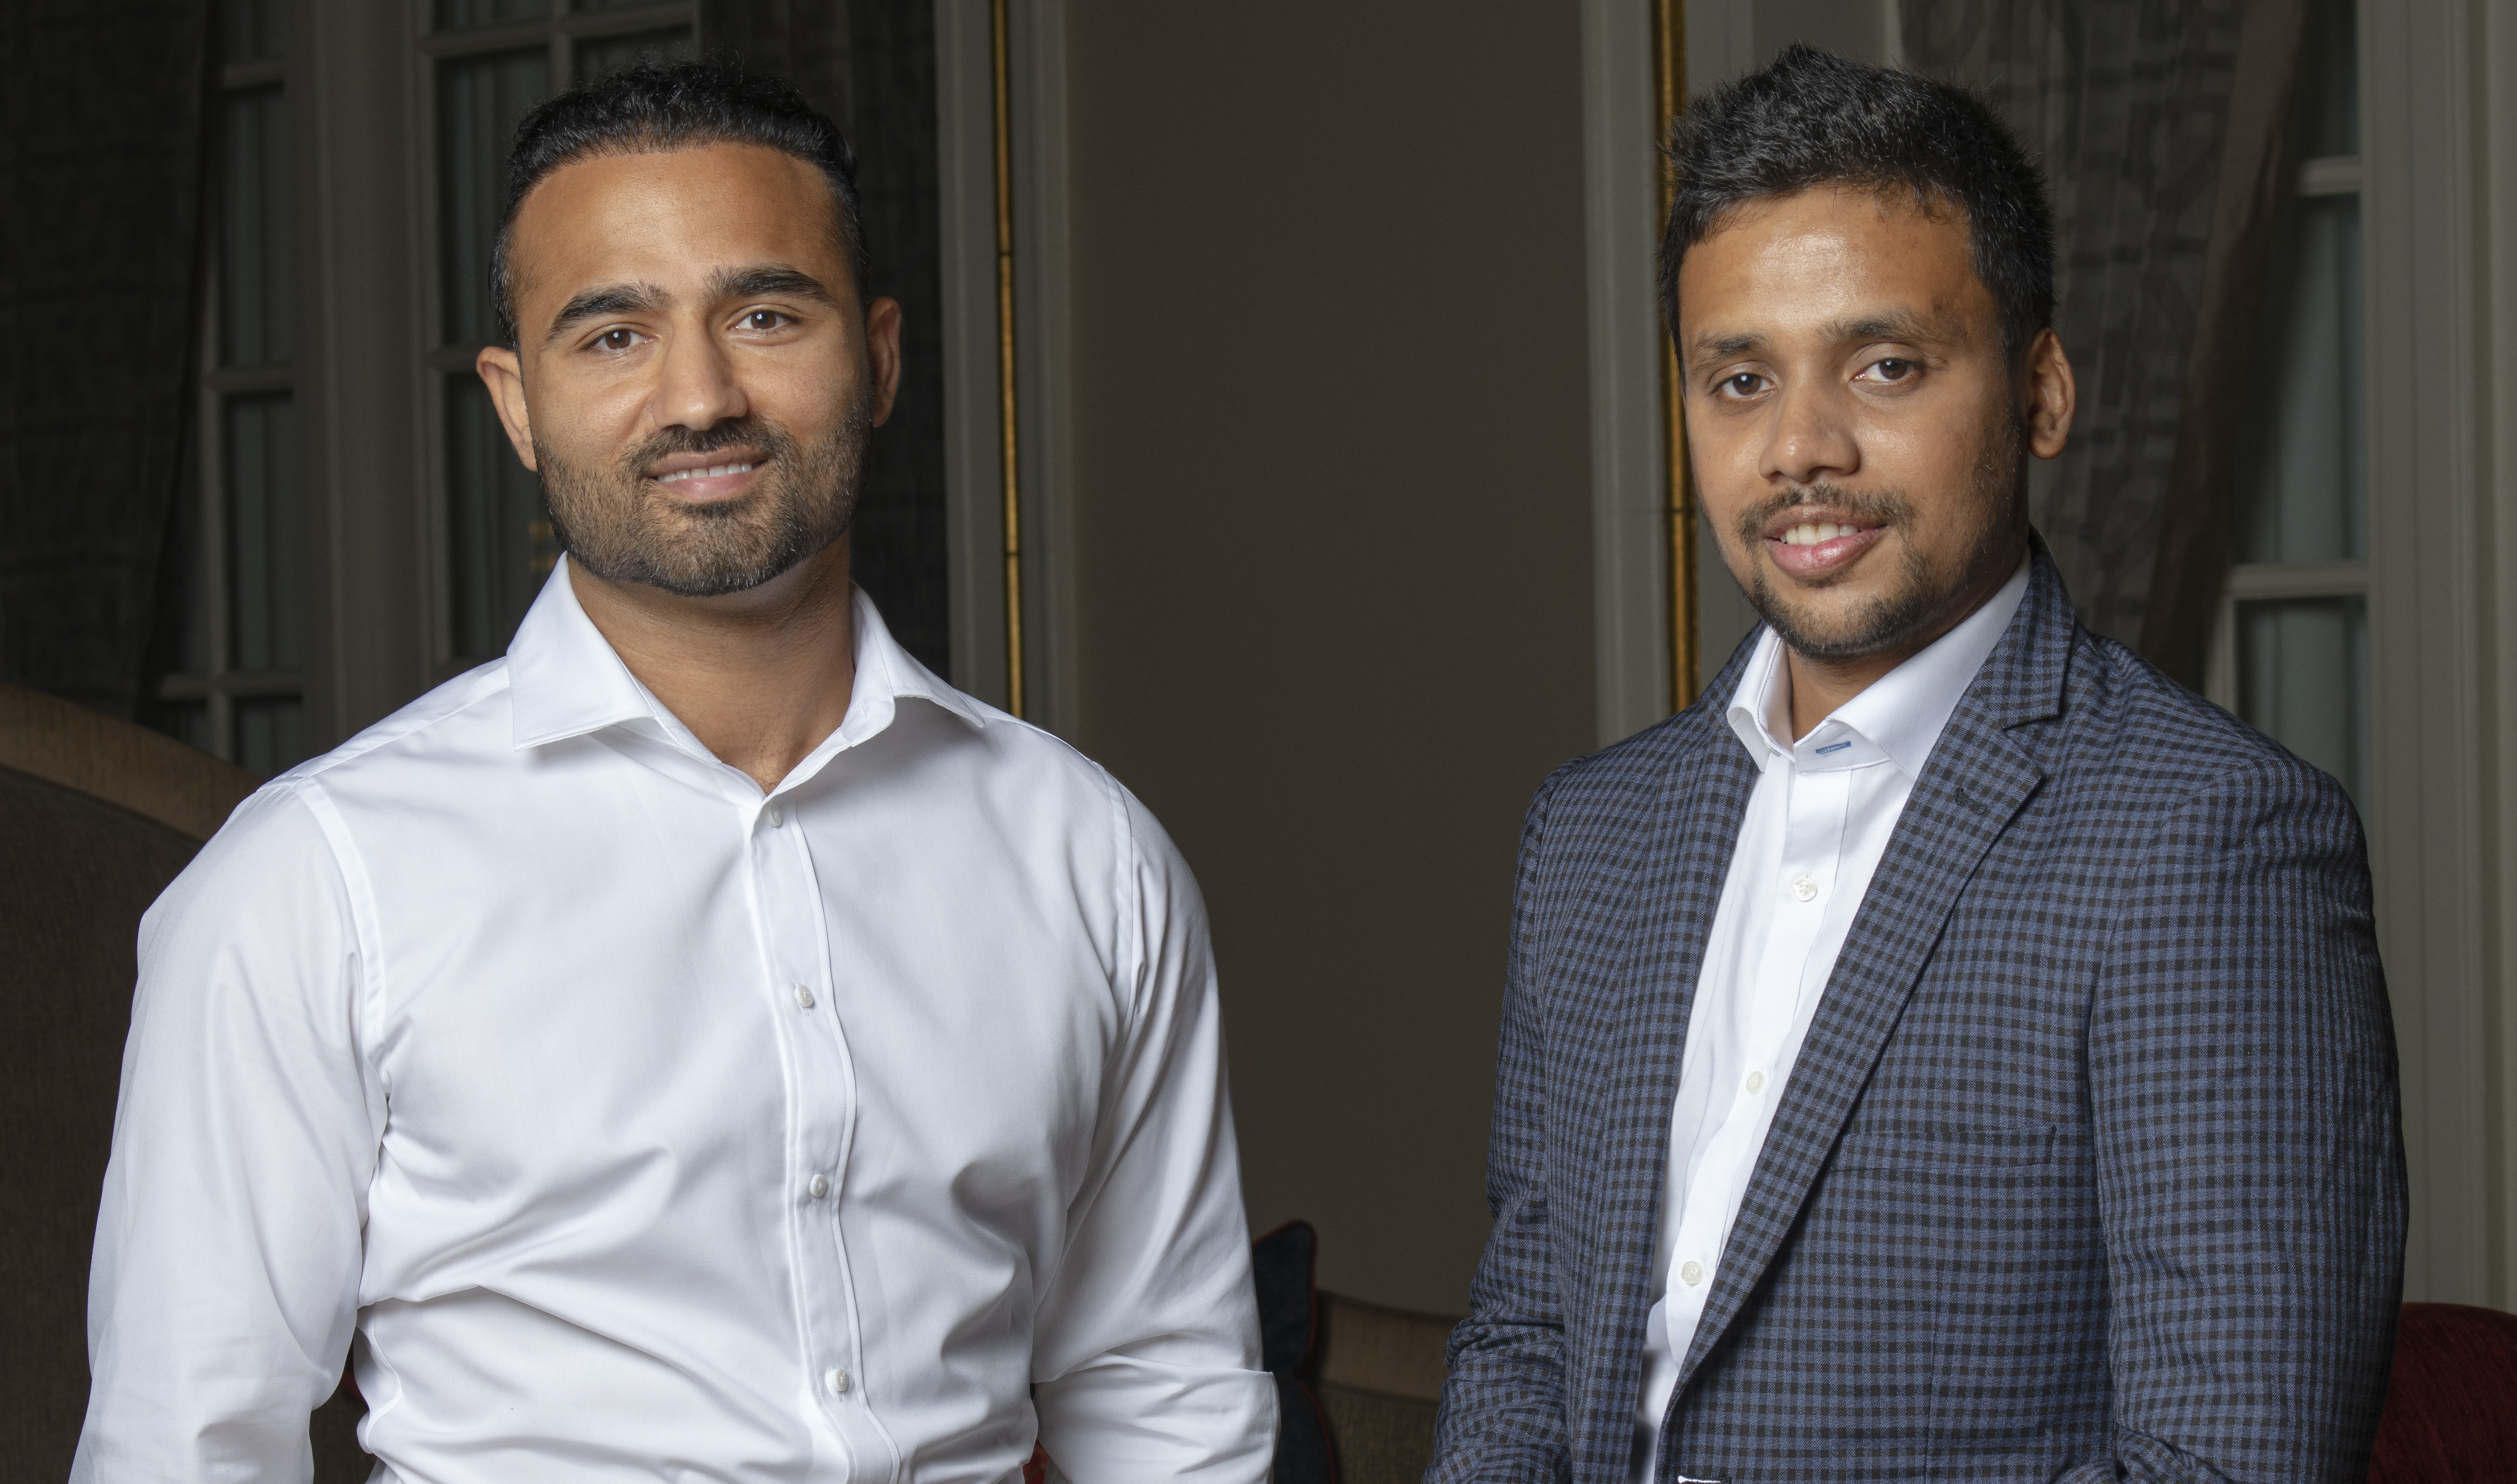 Game changers: BLKBOX founders Athar Zia and Jay Shah